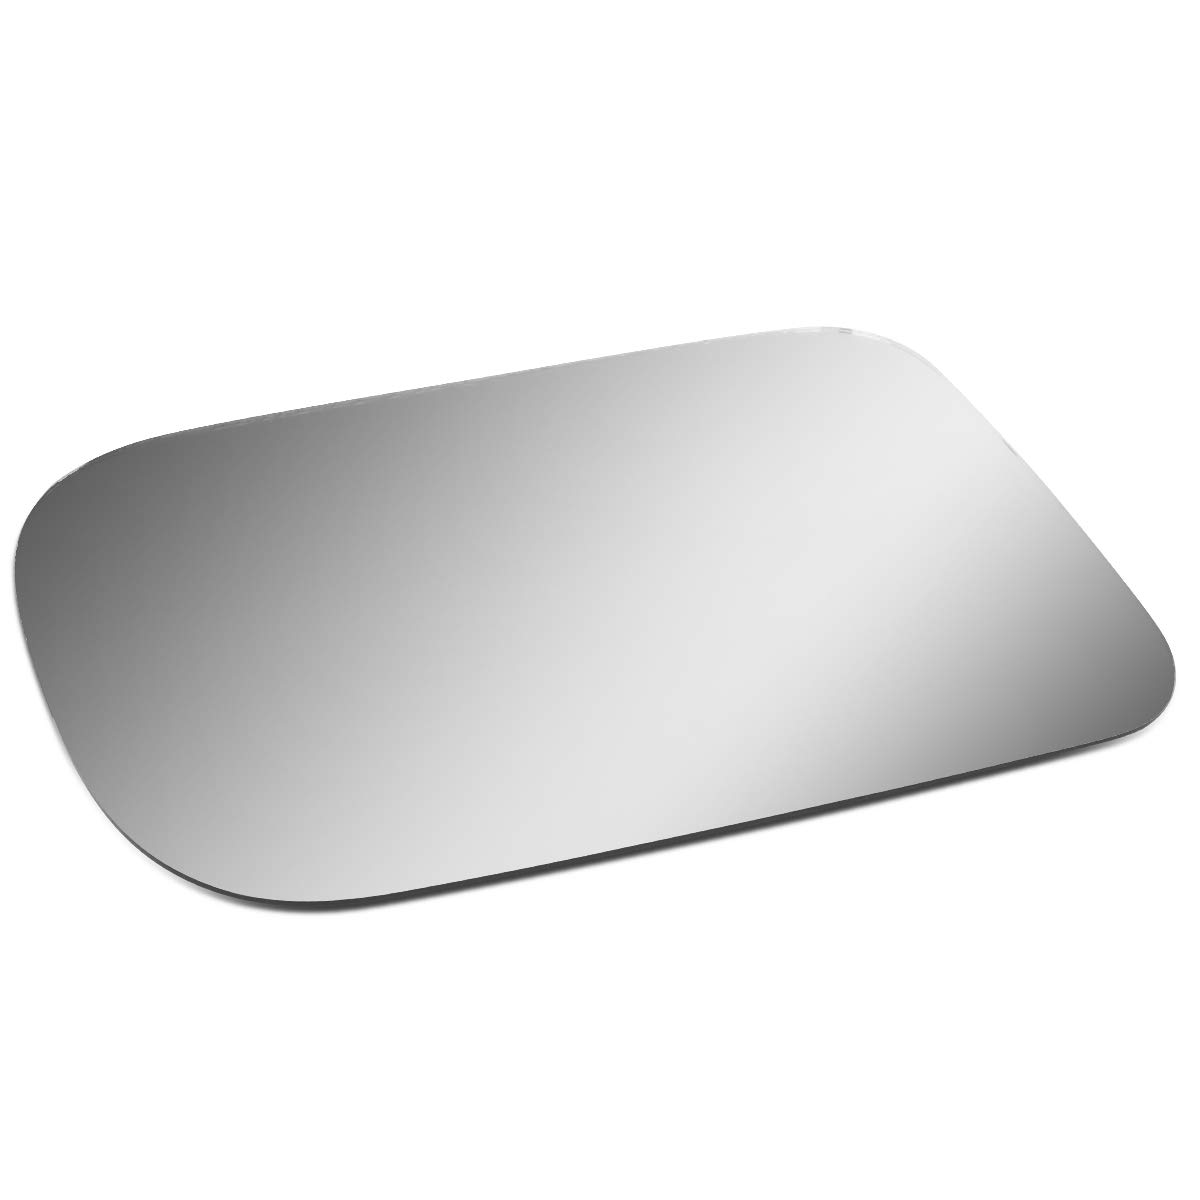 Driver/Left Side Door Rear View Mirror Glass Lens Replacement Replacement for 1994-1999 Dodge Ram Pickup/Van/B-Series